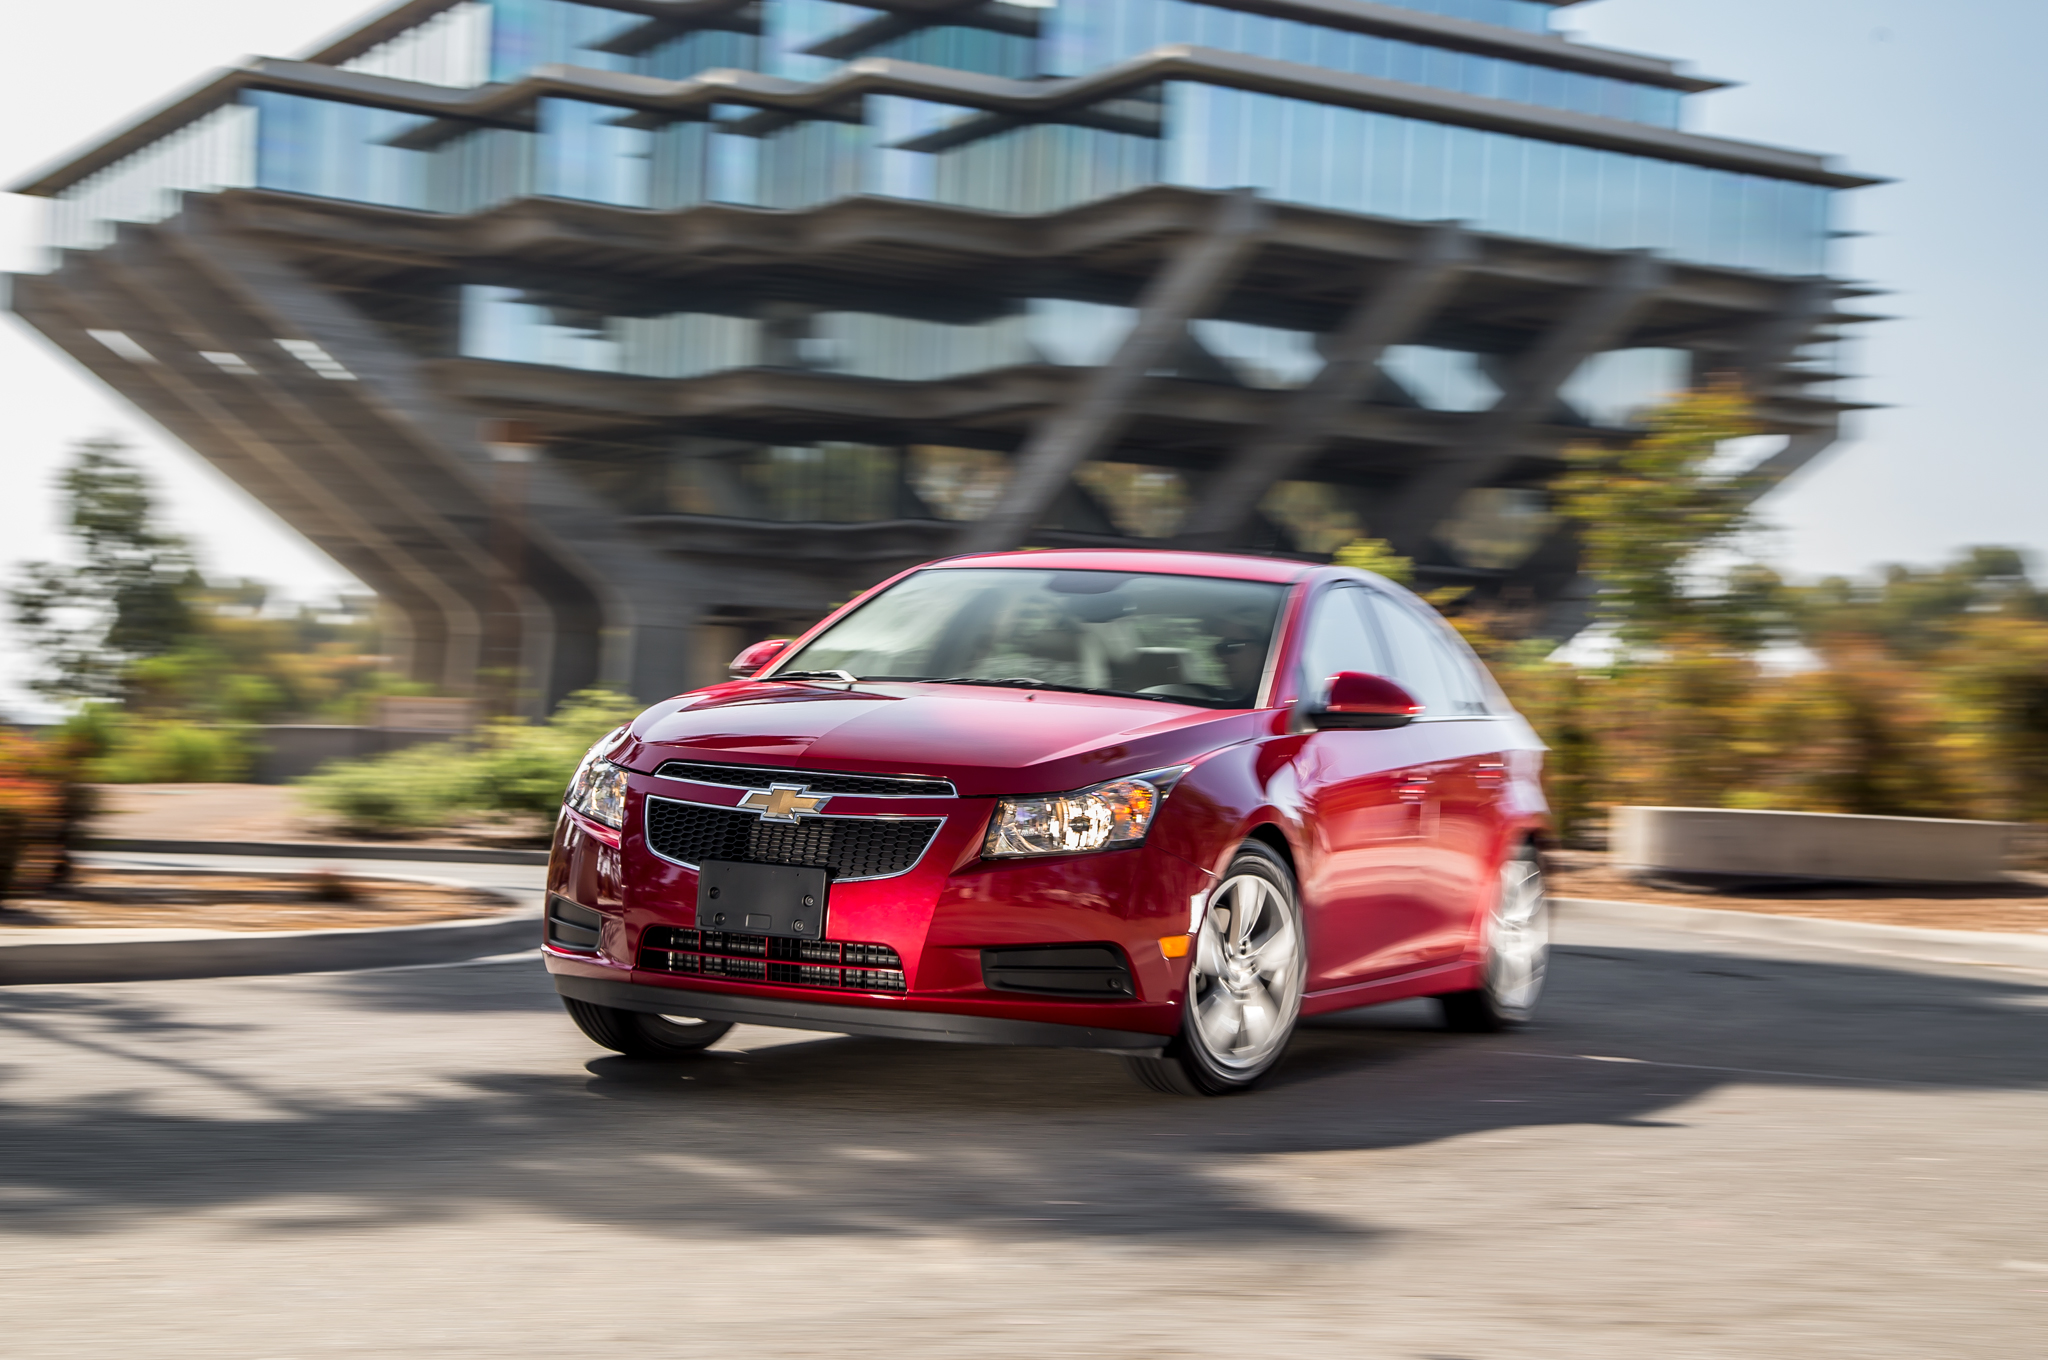 GM Bringing More Turbodiesel Models to U.S.